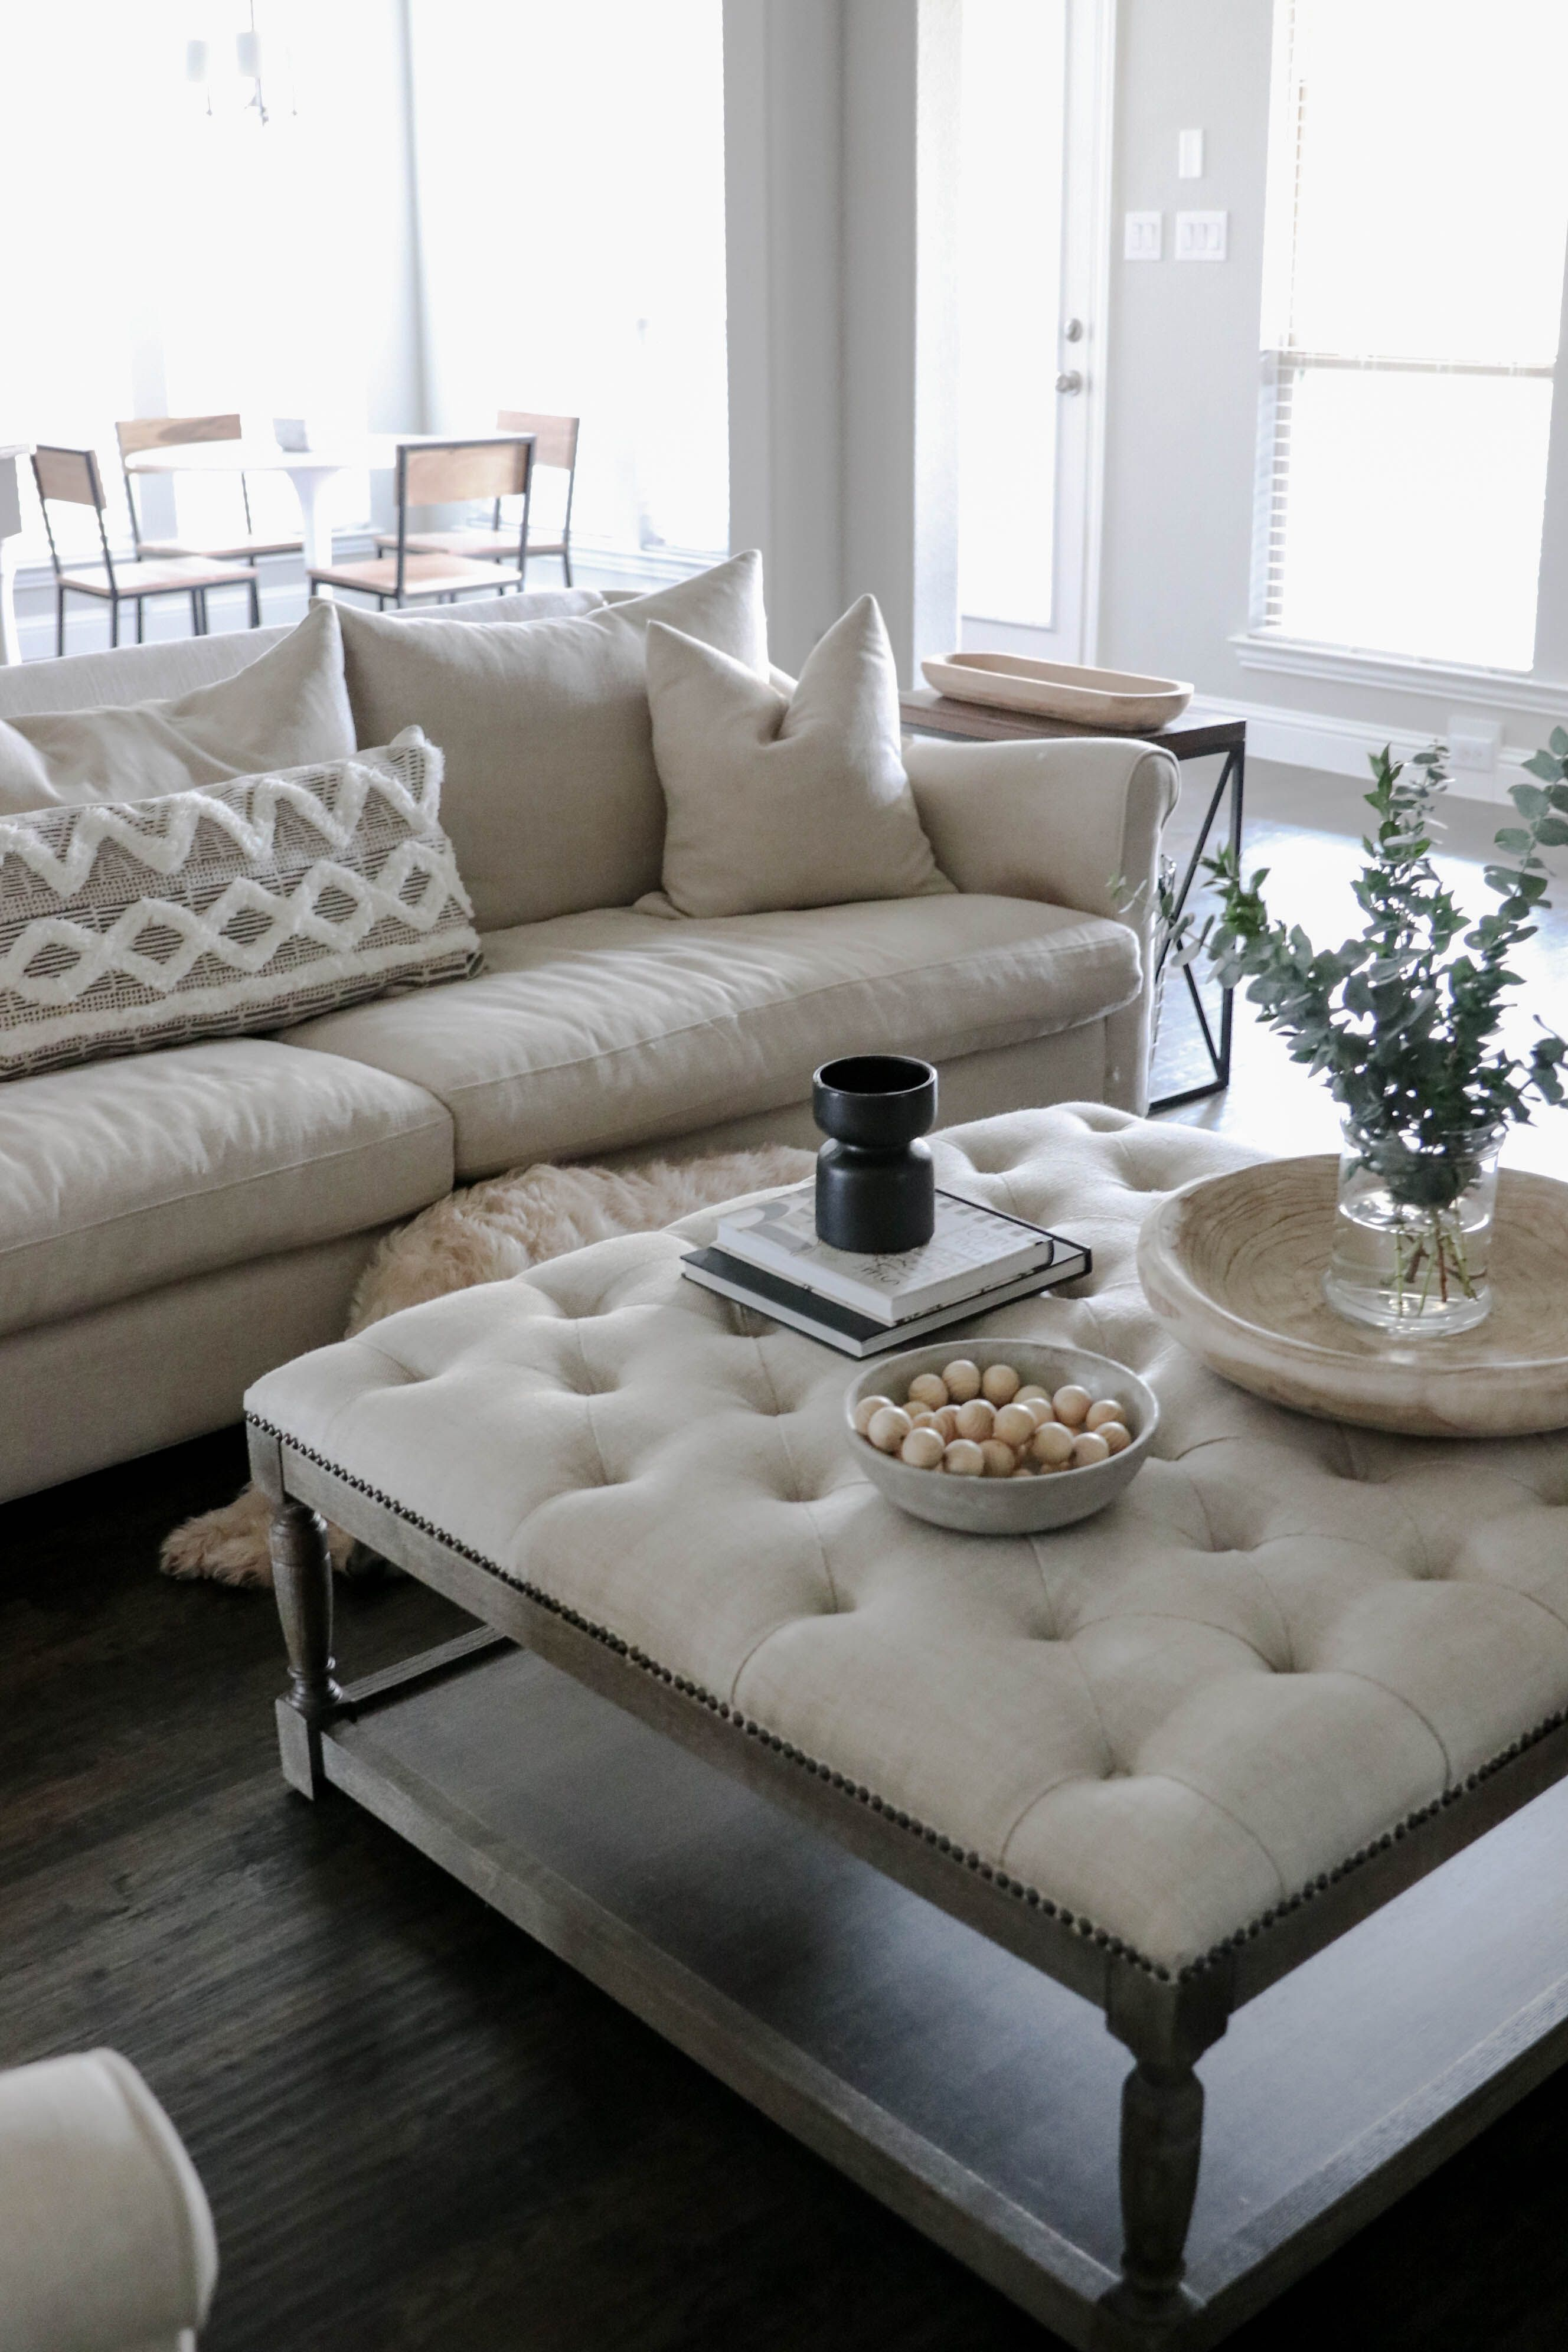 Living Room Decor At Home Ottoman Coffee Table Decor [ 3984 x 2656 Pixel ]